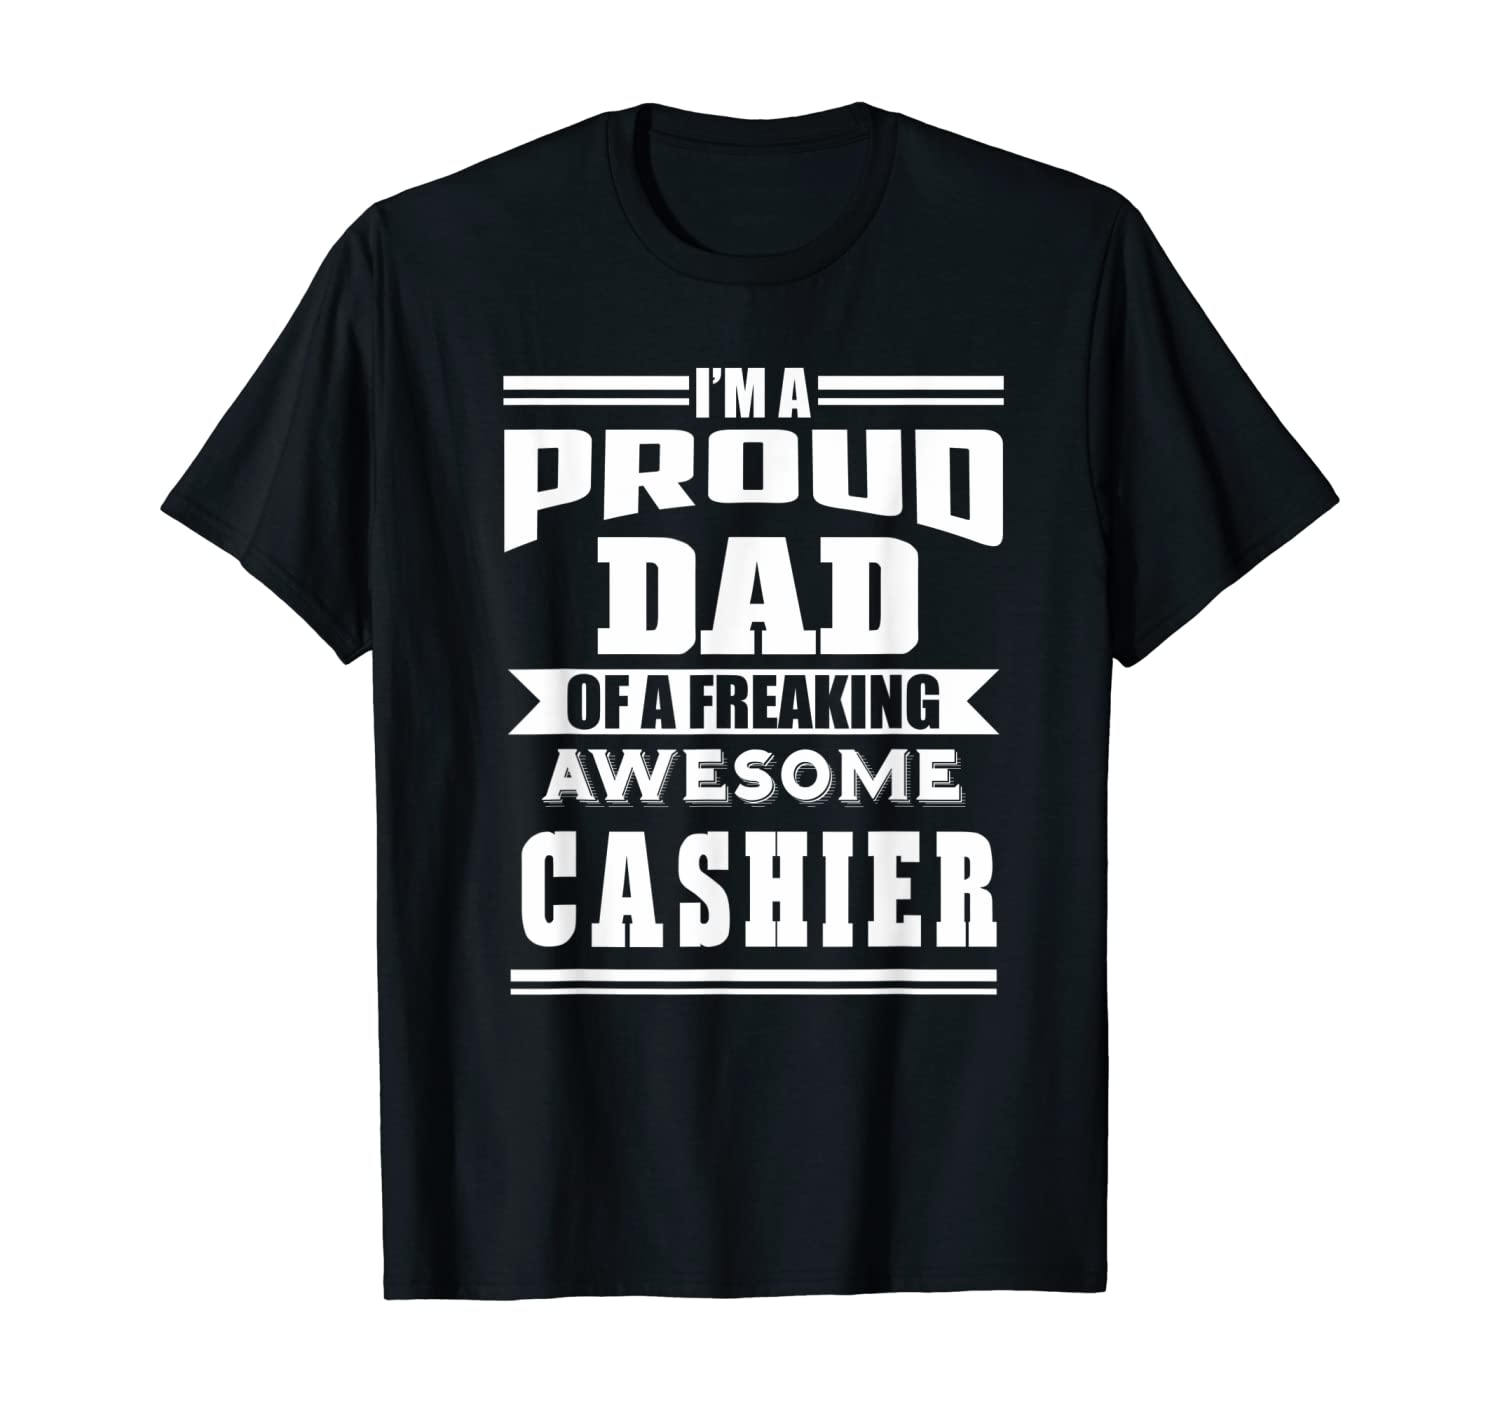 Proud Dad Of Freaking Awesome Cashier Funny Gift T-Shirt